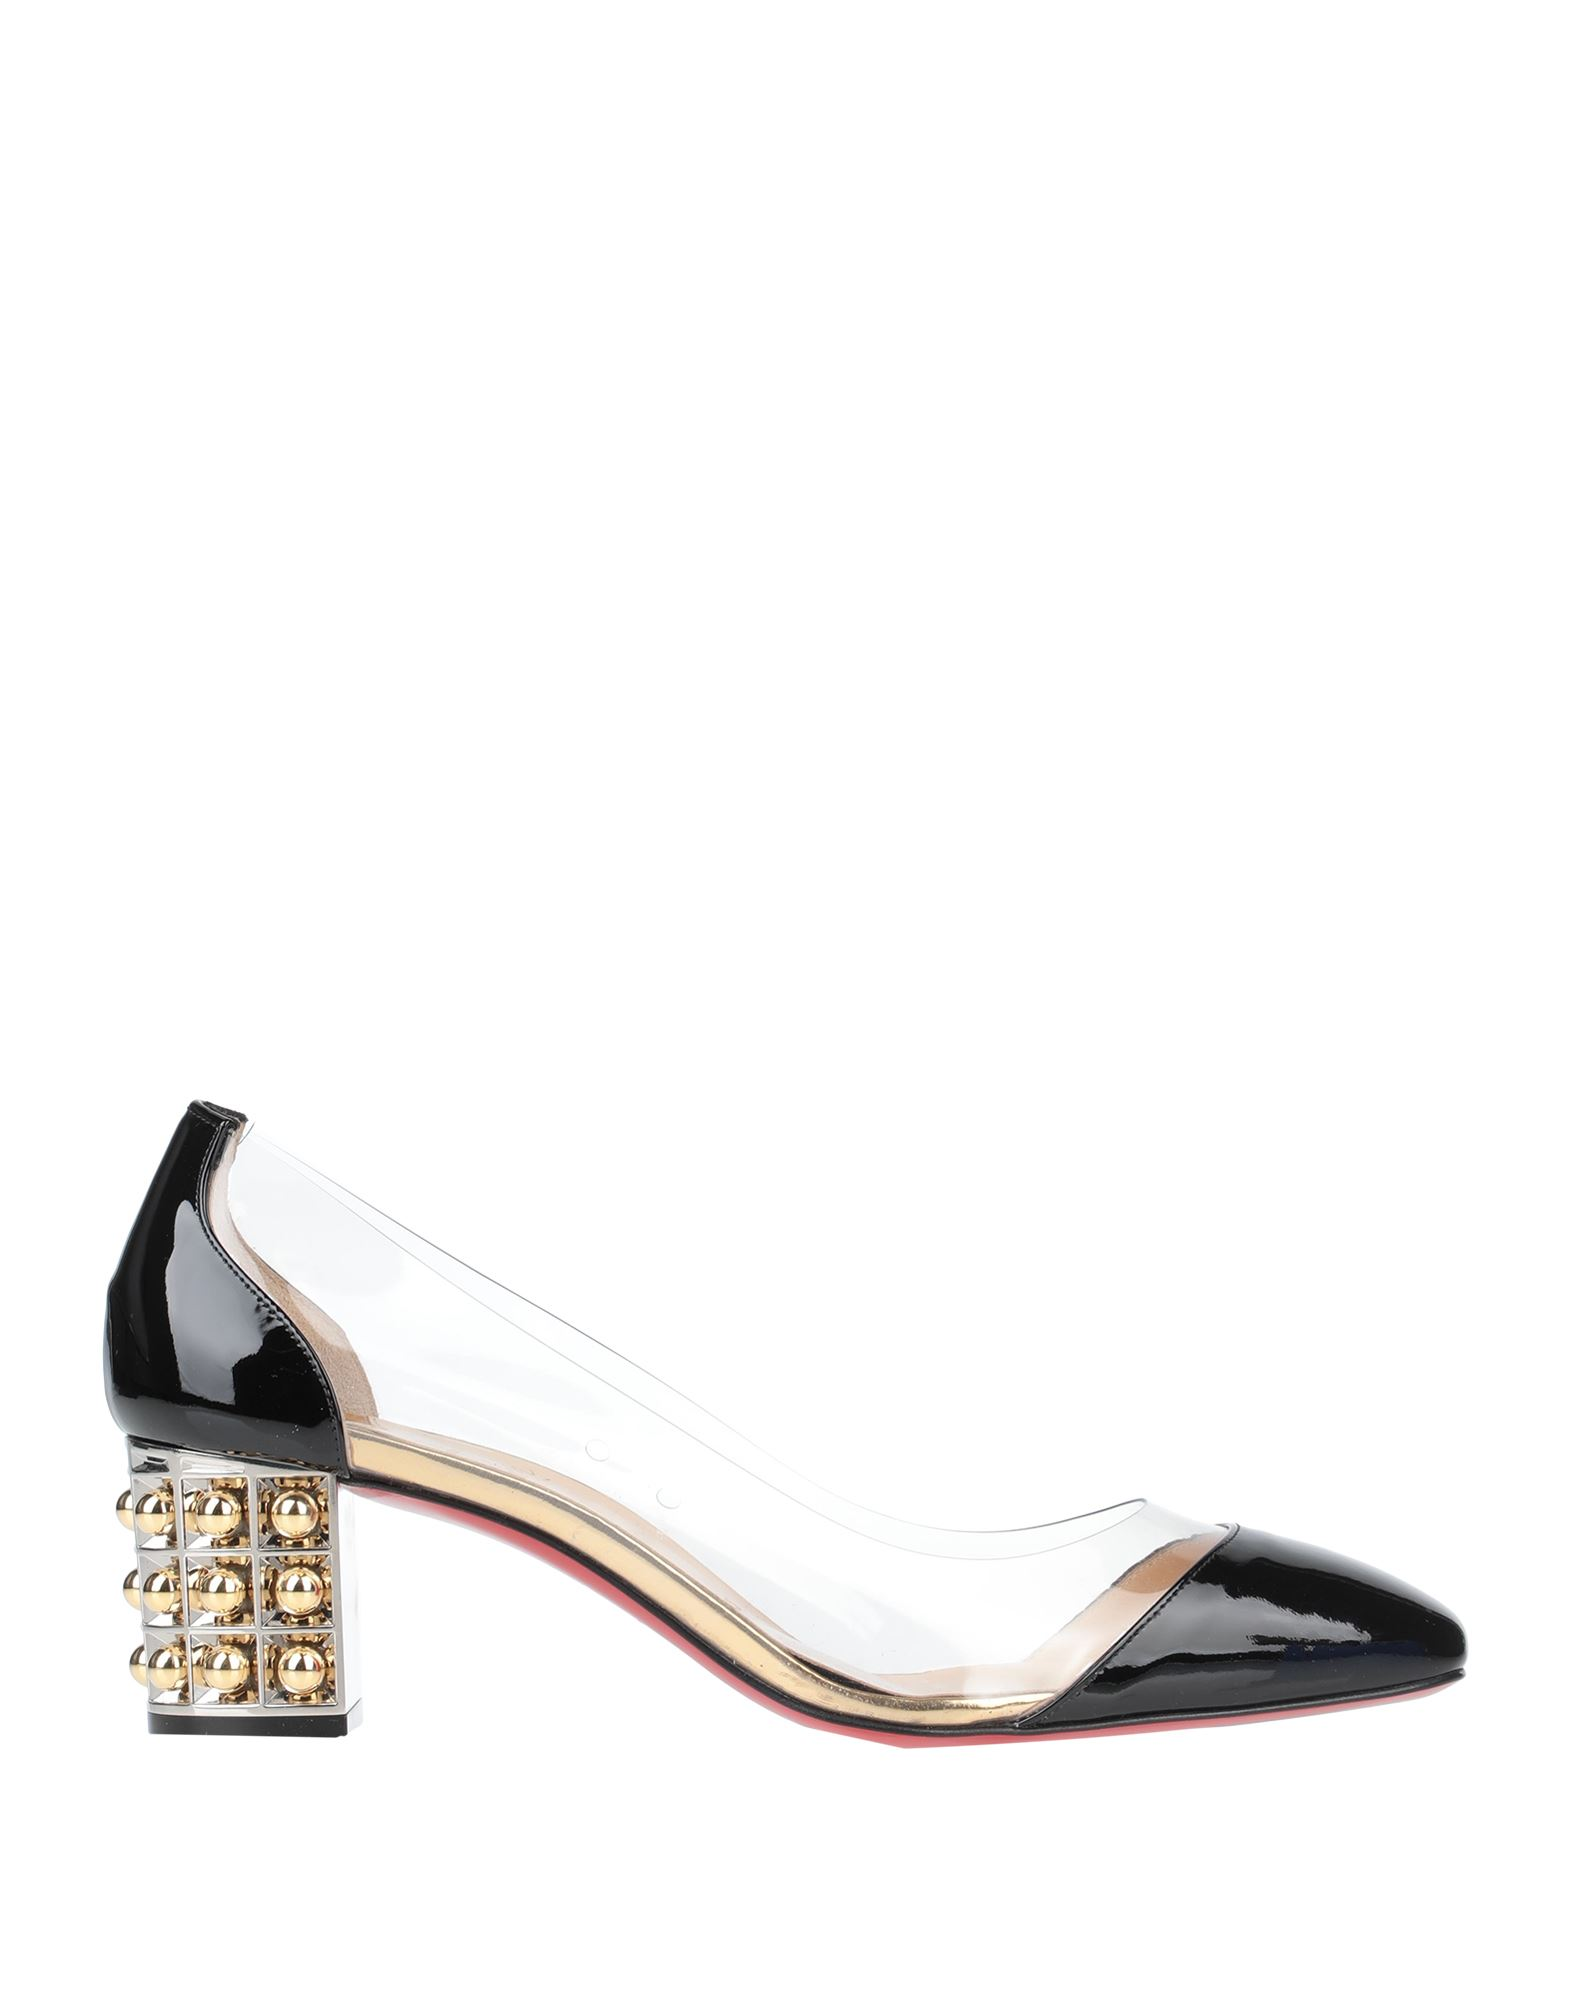 CHRISTIAN LOUBOUTIN Pumps. varnished effect, studs, solid color, round toeline, square heel, leather lining, leather sole, contains non-textile parts of animal origin, small sized. Soft Leather, PVC - Polyvinyl chloride